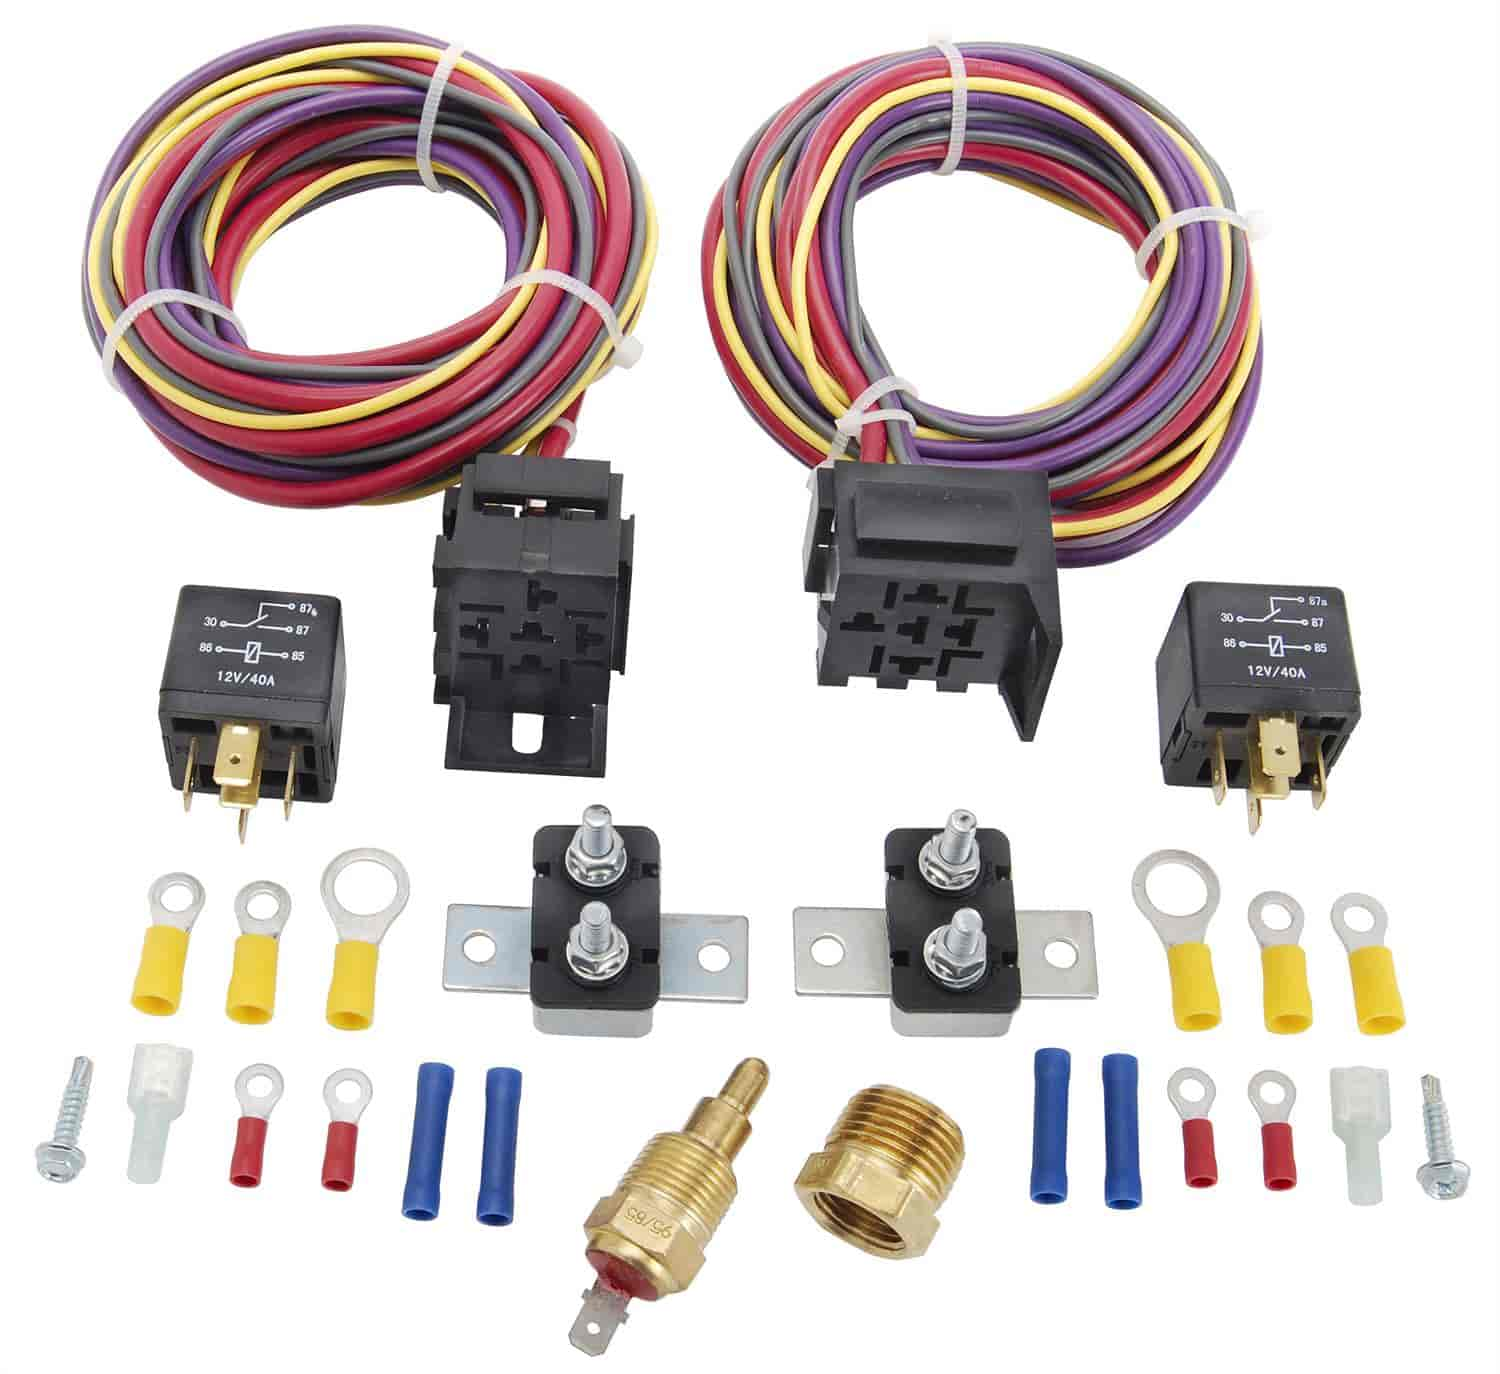 555 10571 jegs performance products 10571 dual fan wiring harness & relay jegs universal wiring harness at nearapp.co